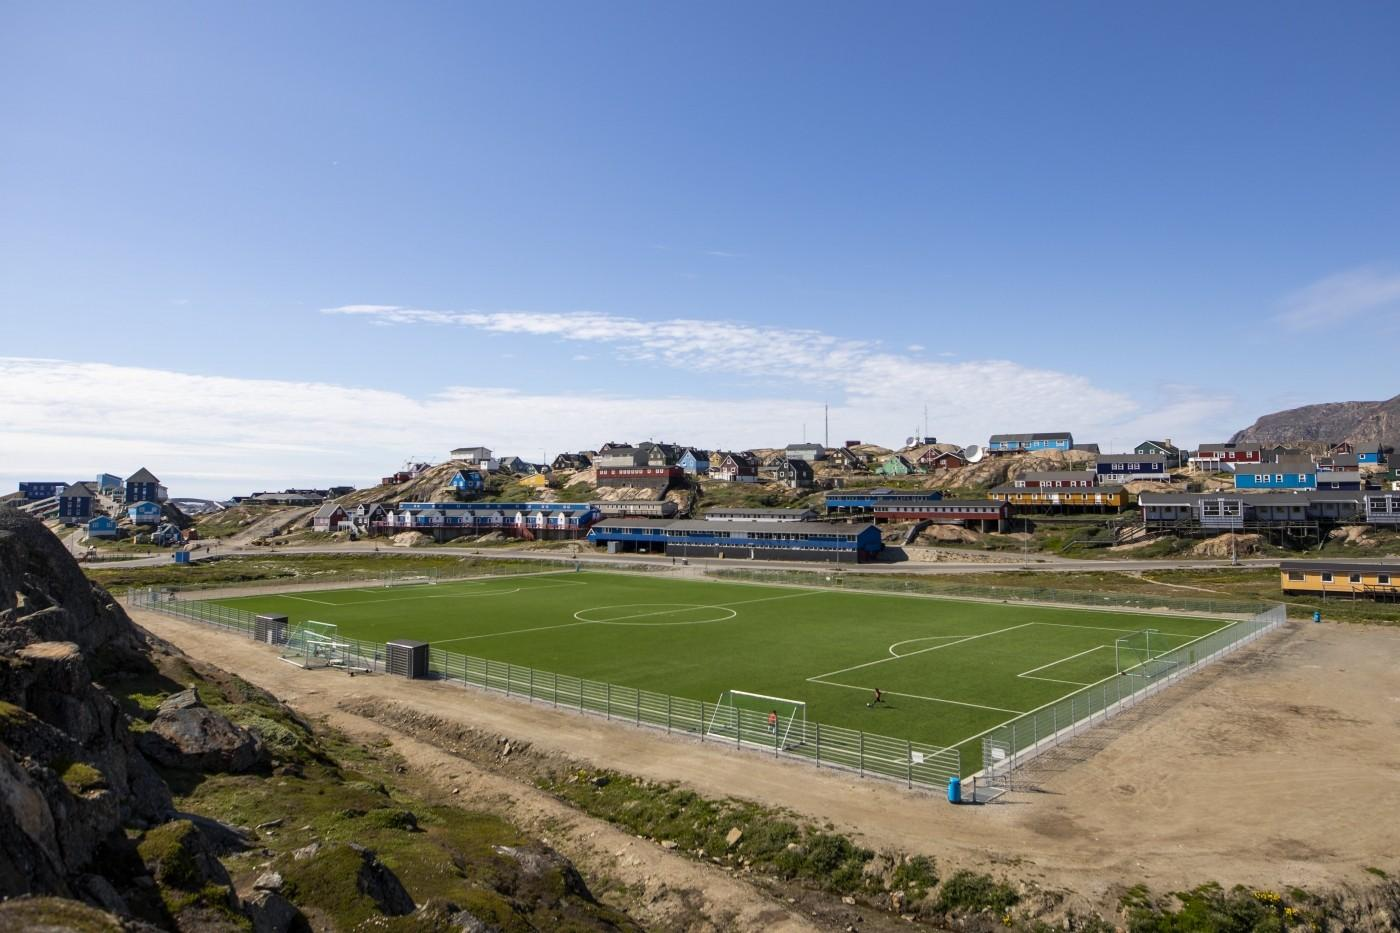 Football field in Sisimiut. Photo by Aningaaq R Carlsen - Visit Greenland